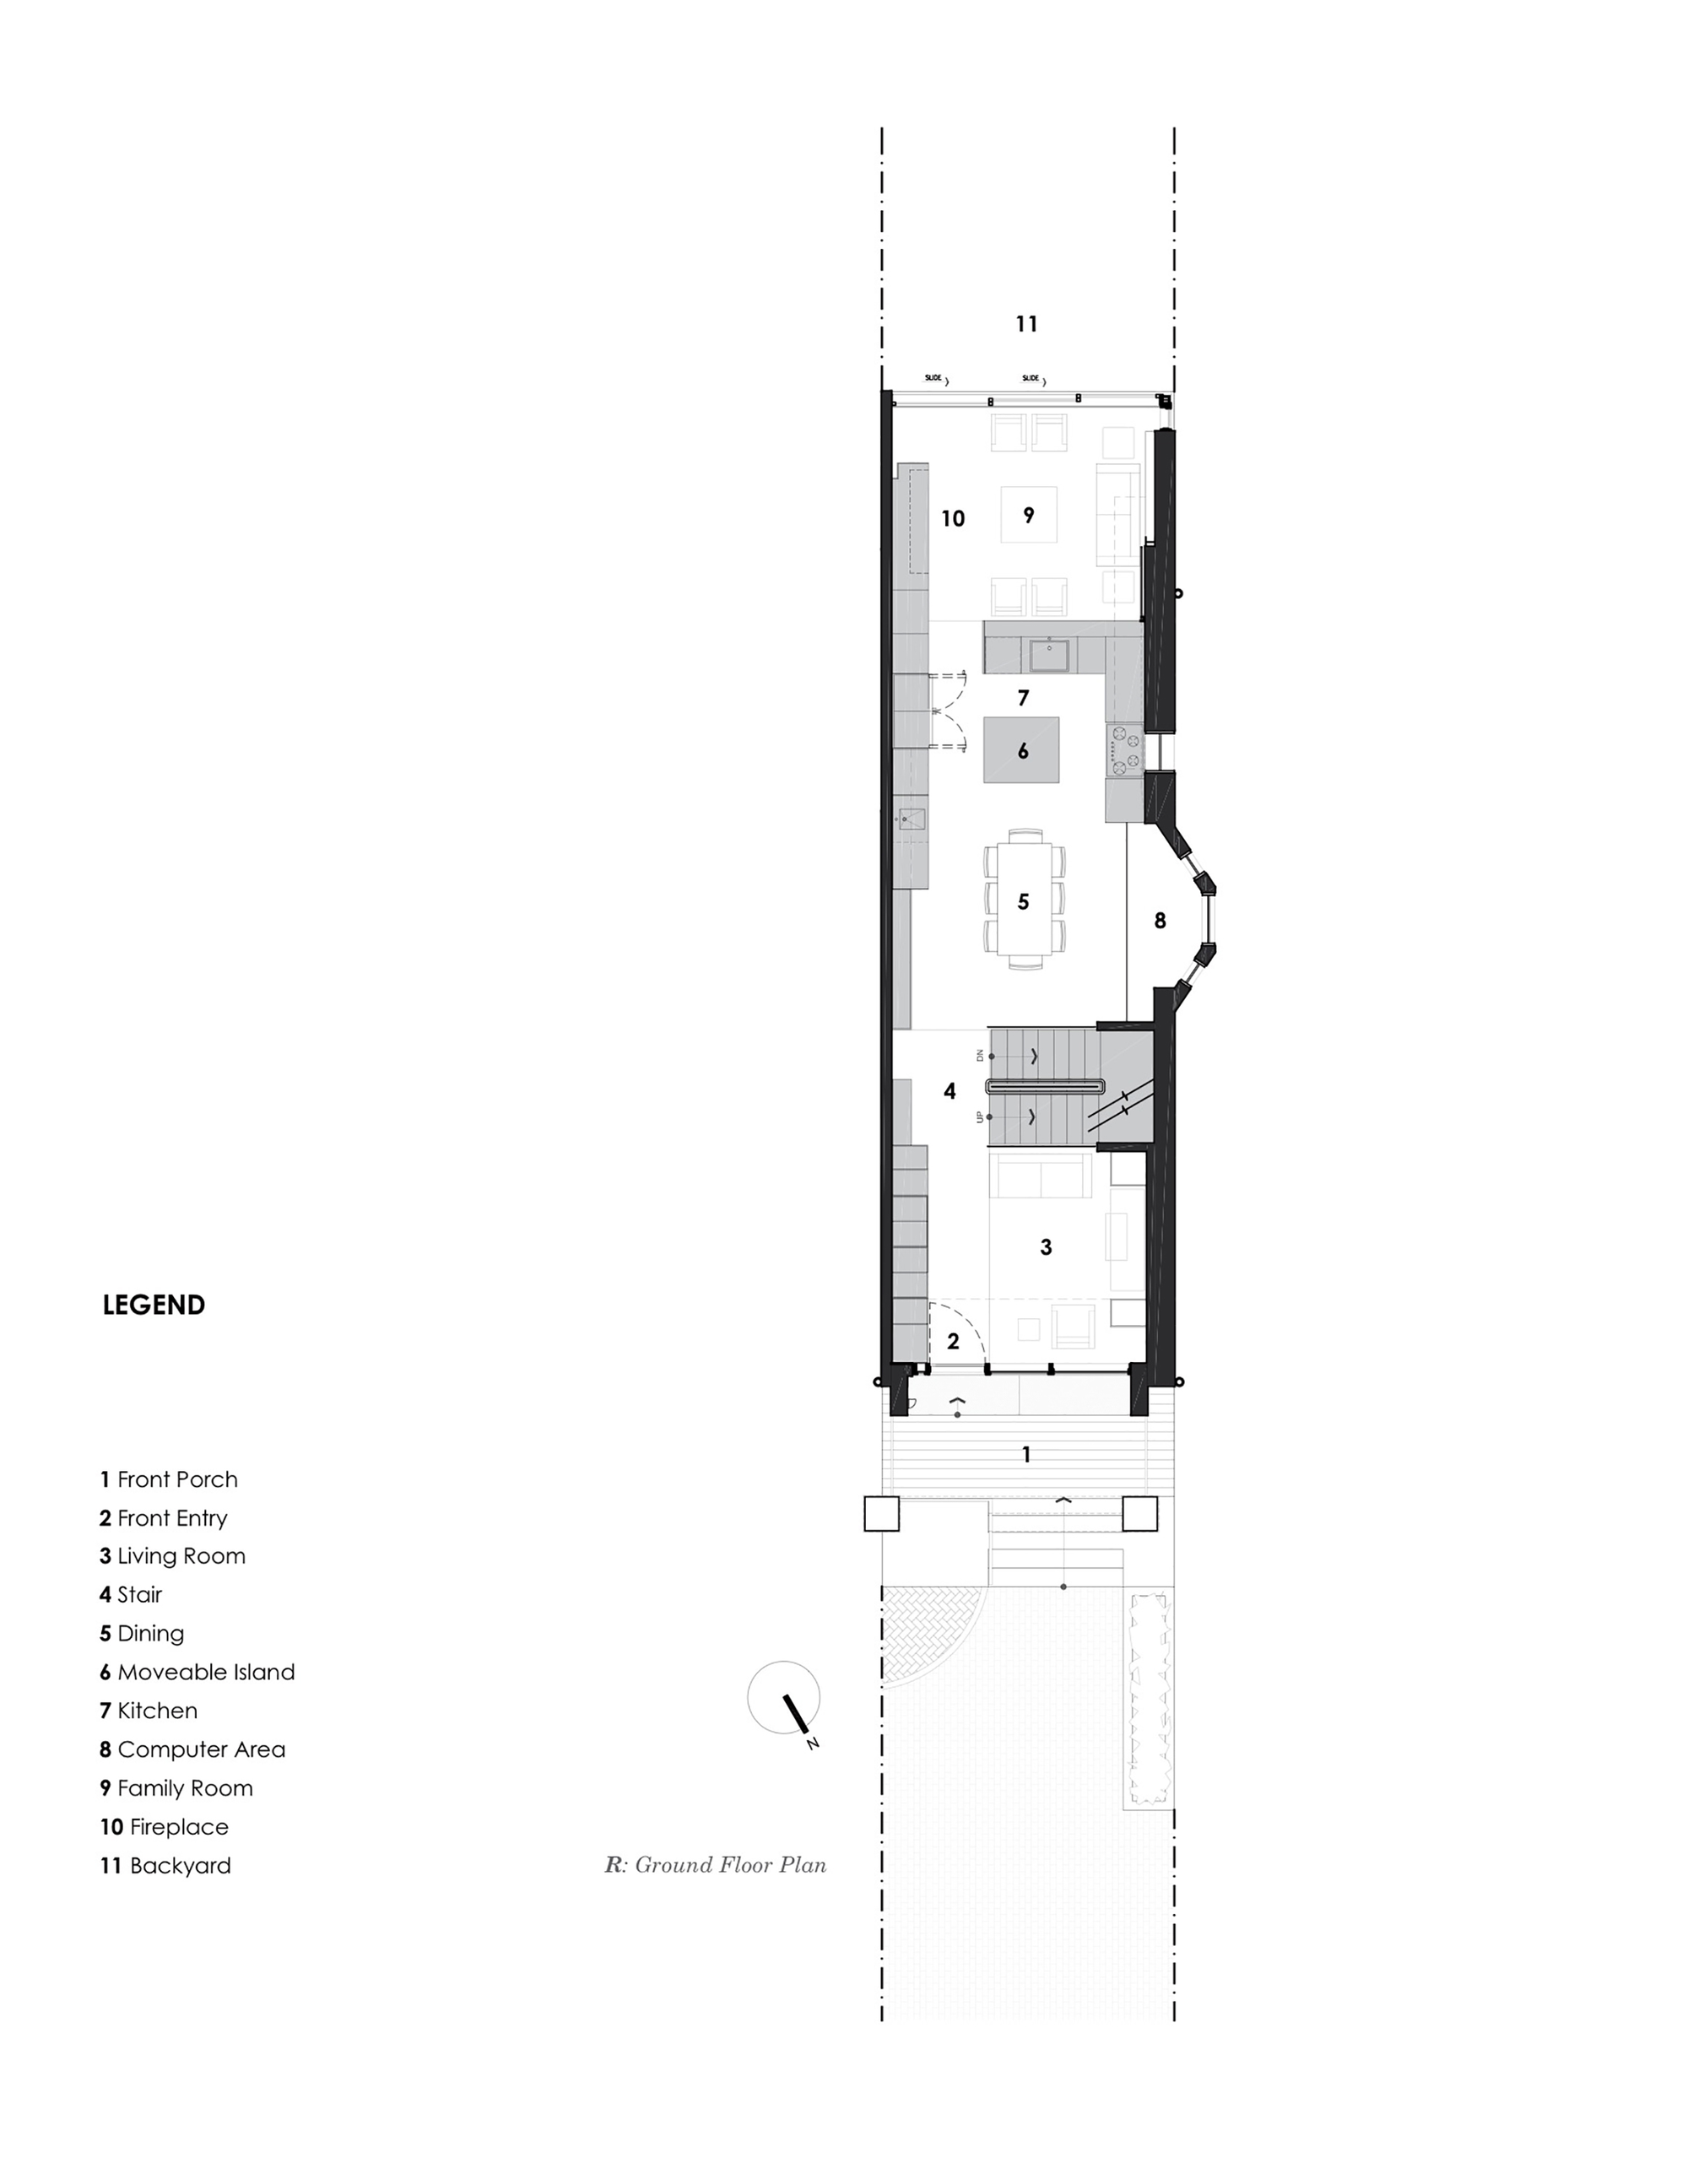 53a4f20ac07a80a393000063_house-in-the-beach-drew-mandel-architects_house_in_the_beach_-_plan-530x685